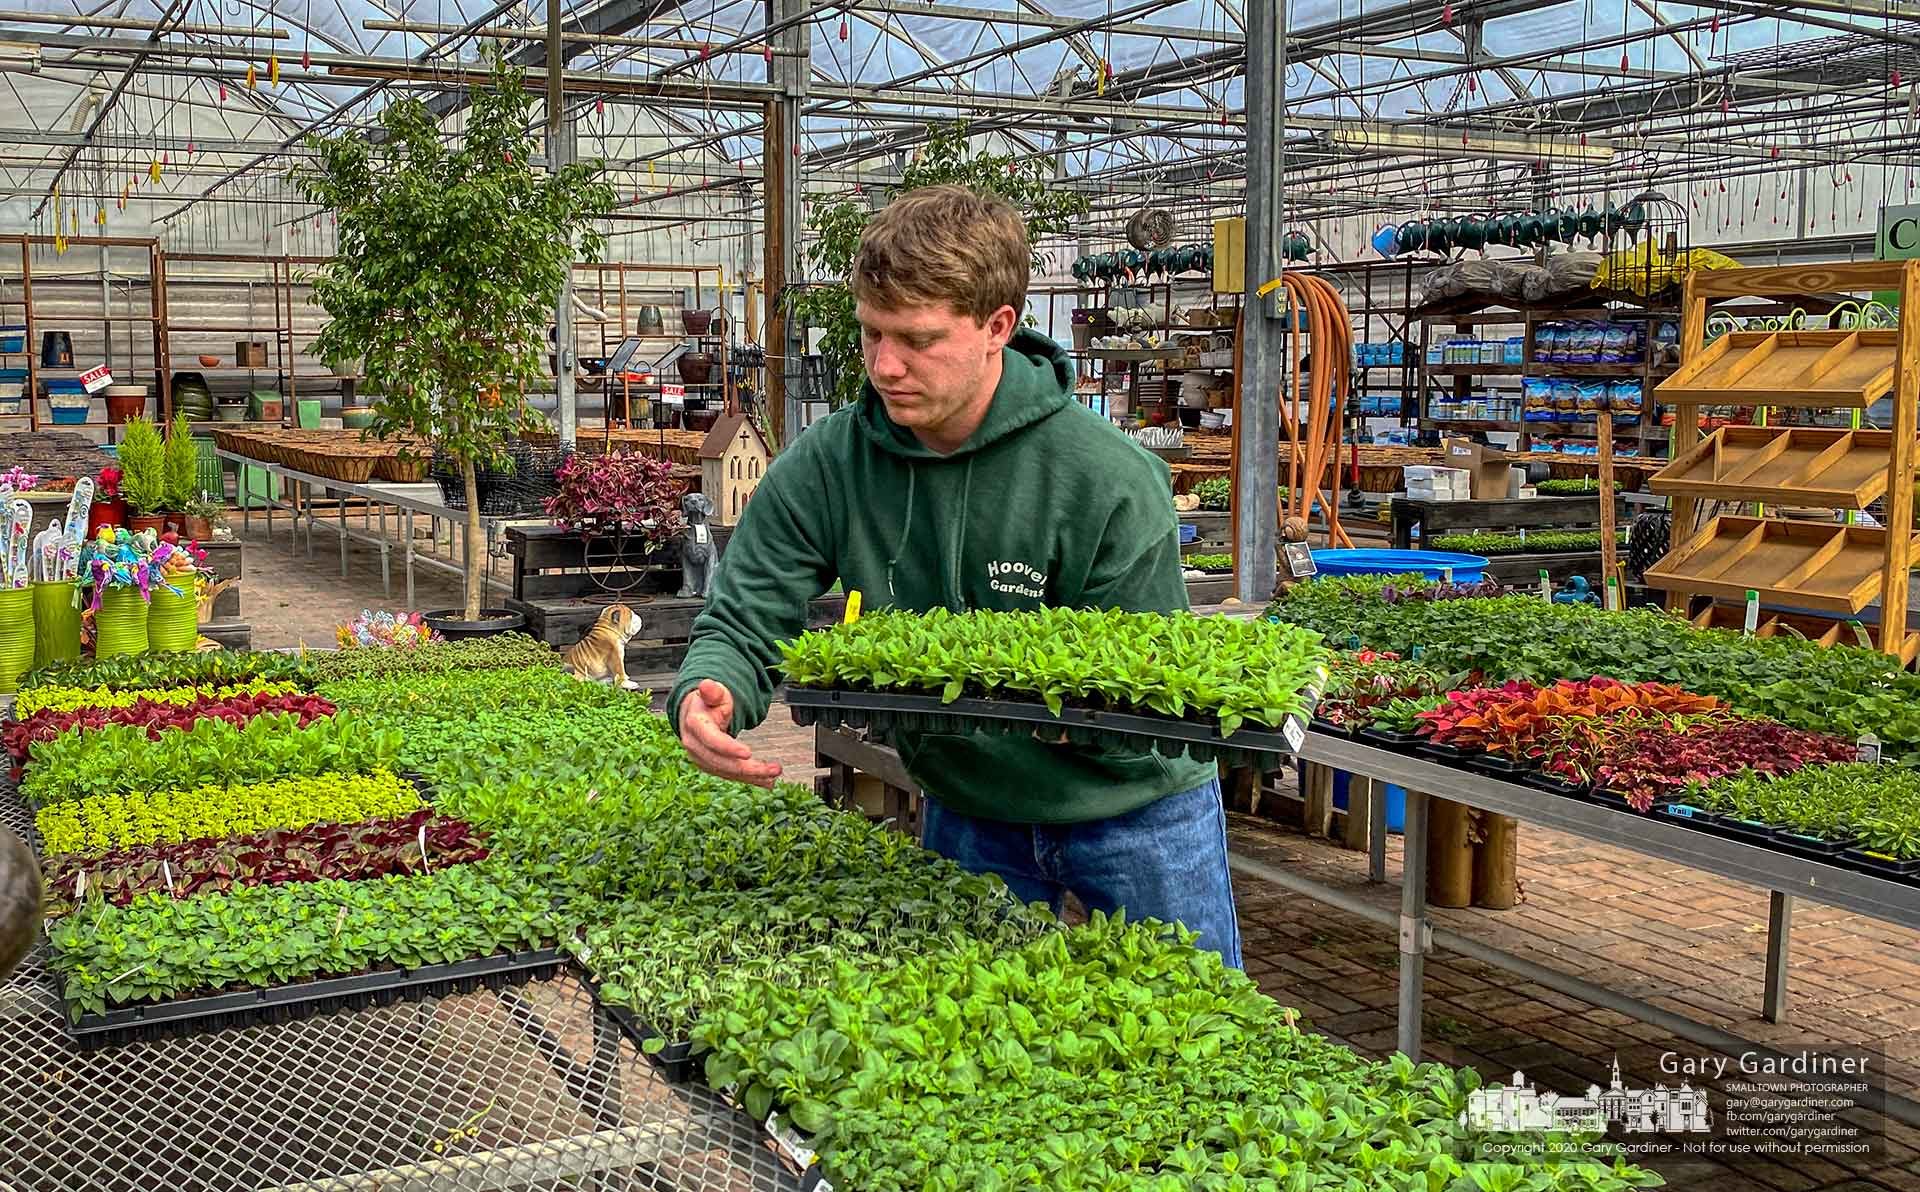 Trays of annual flowers are placed onto racks in the greenhouse at Hoover Gardens as a warm series of days begins to mimic the days of Spring and the garden center's preparations to supply eager green thumbs begins. My Final Photo for March 5, 2020.